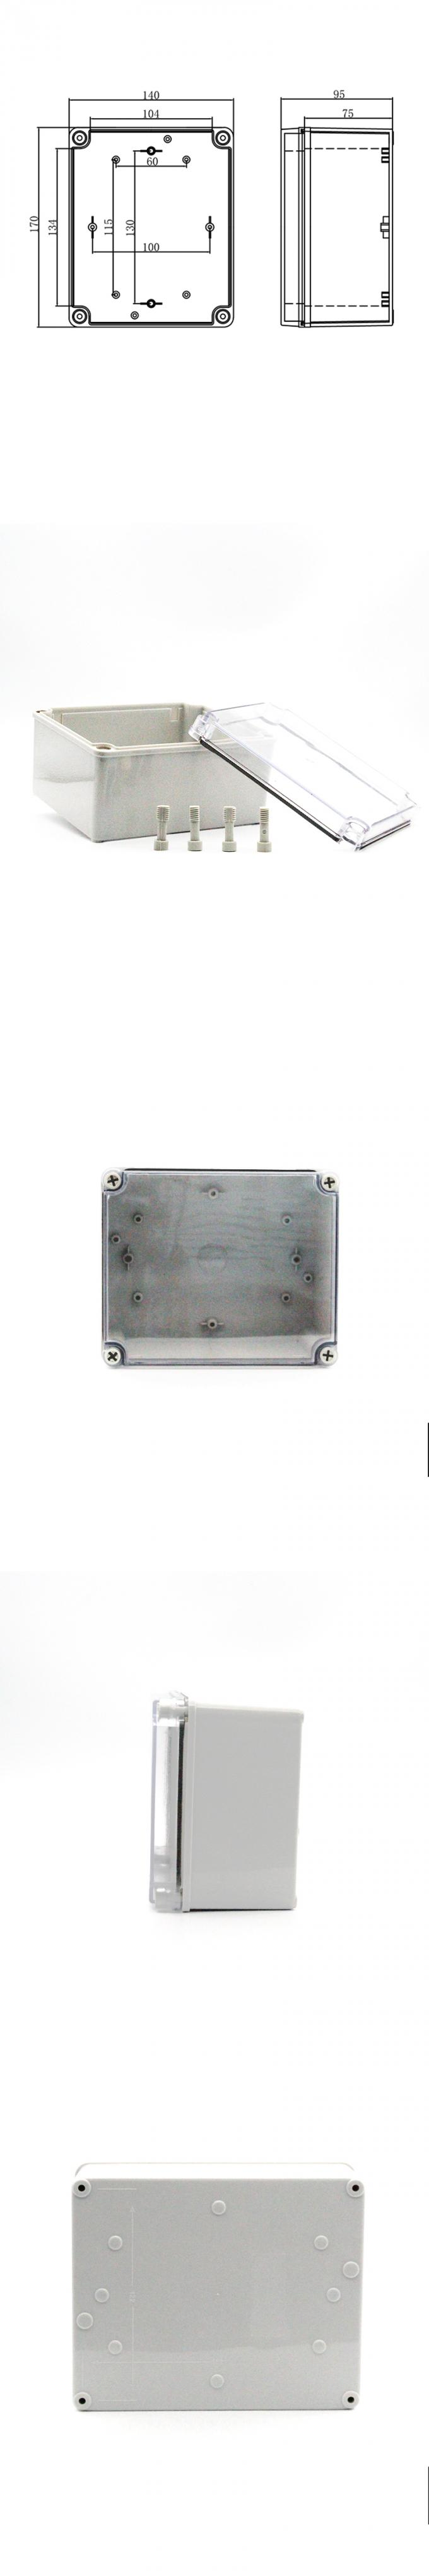 Safety External Waterproof Junction Box M3 171409T CE / RoHS Approved